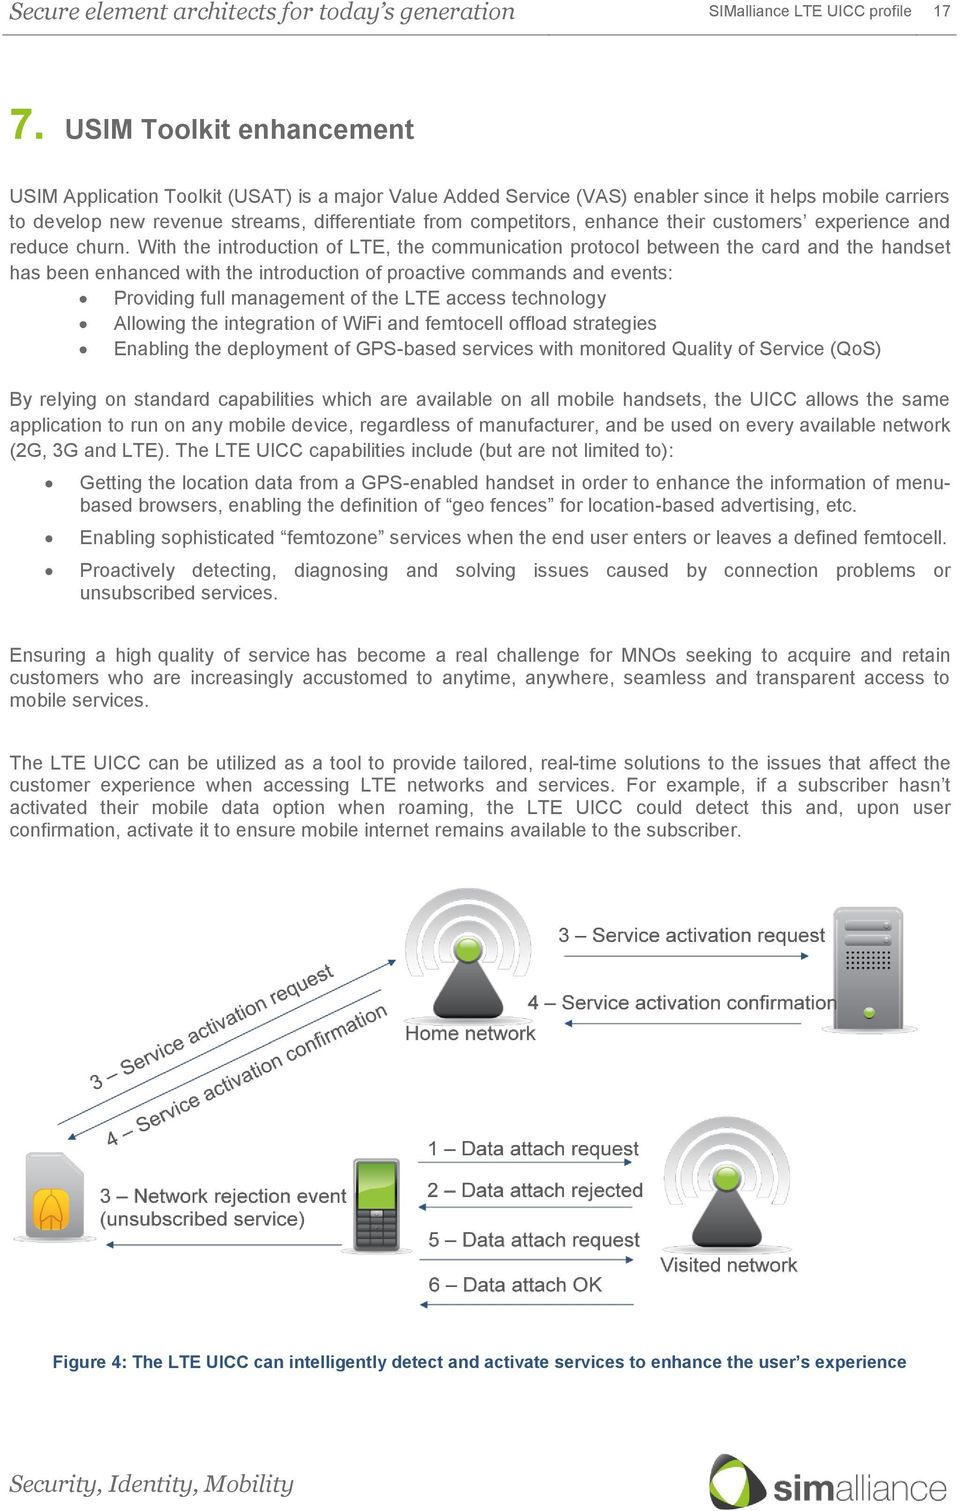 SIMalliance LTE UICC profile  This document is a collection of